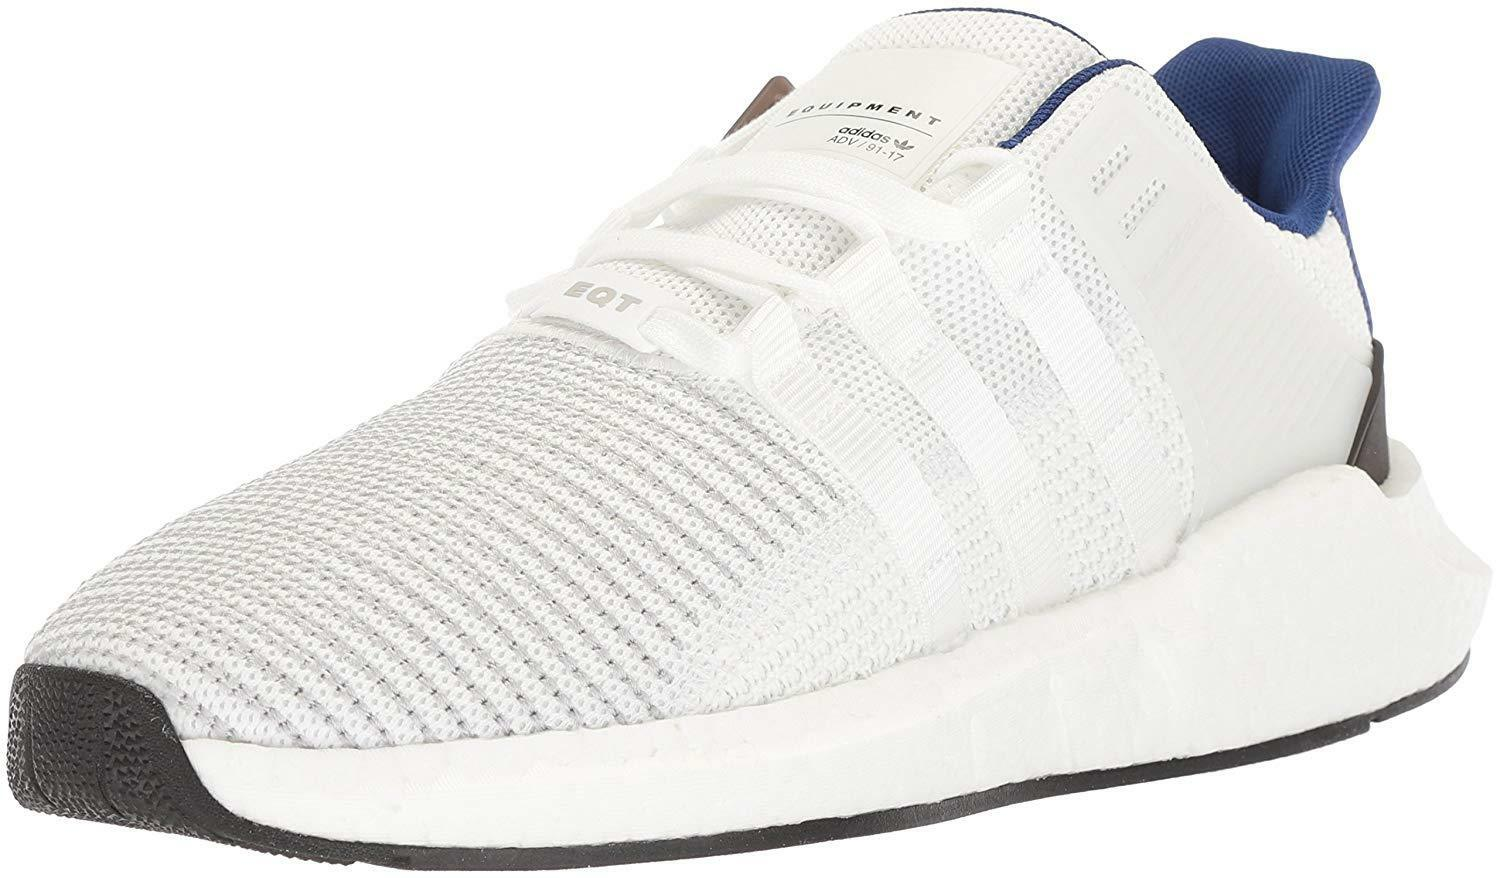 adidas Originals Men's EQT Support 93/17 Running Shoe, White/White/Black, 13 M Cheap and beautiful fashion